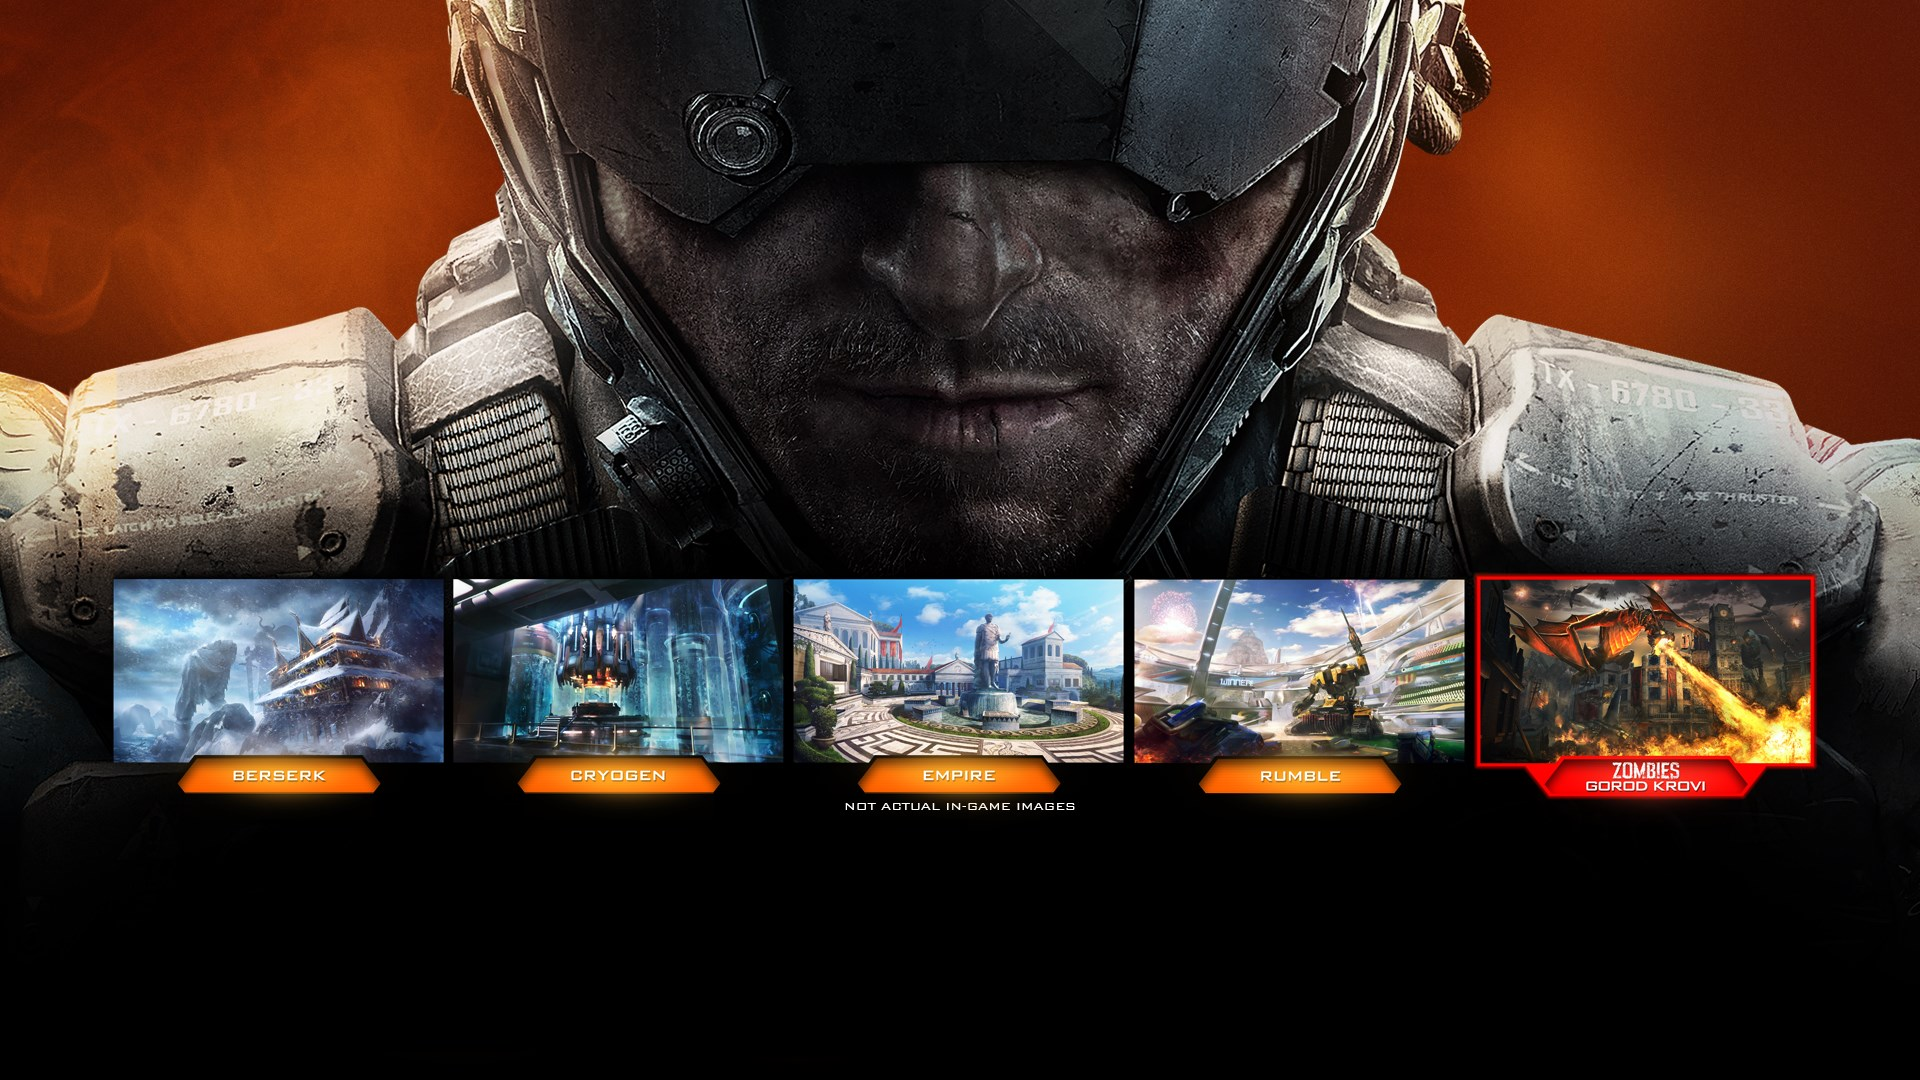 Buy Call of Duty®: Black Ops III - Descent DLC - Microsoft Store en-CA